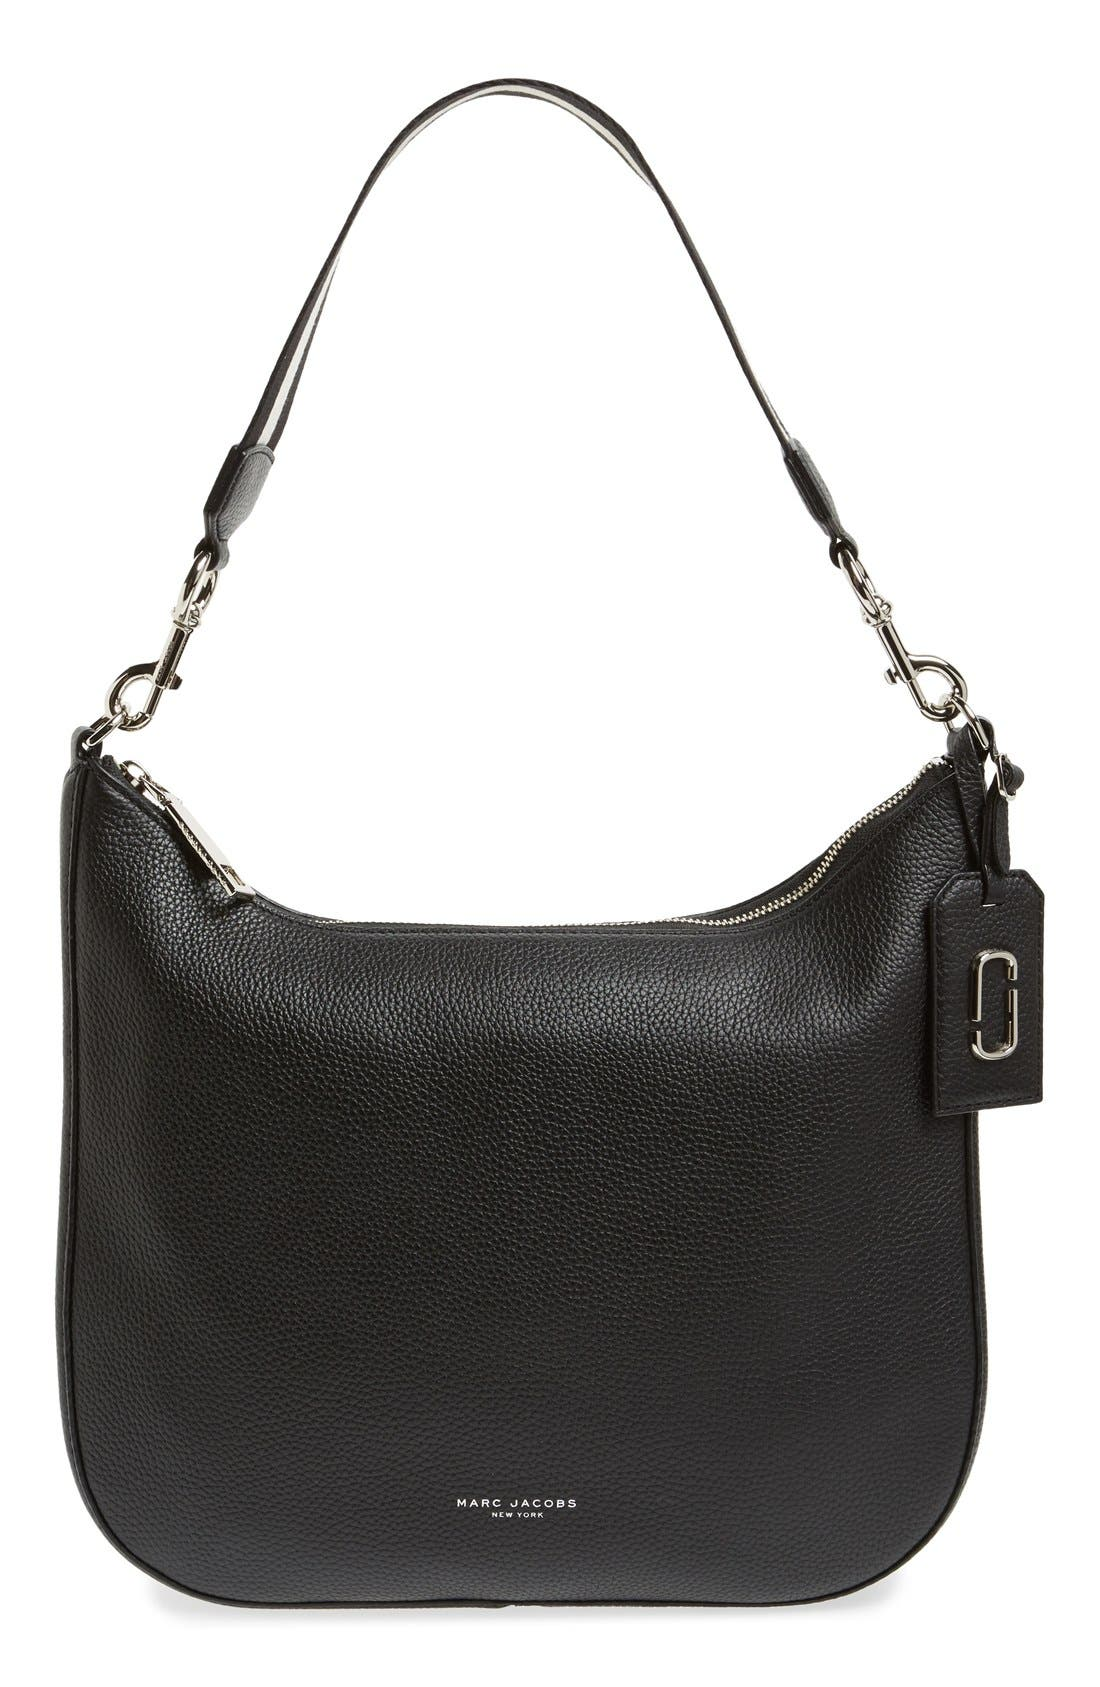 MARC JACOBS 'Gotham City' Leather Hobo